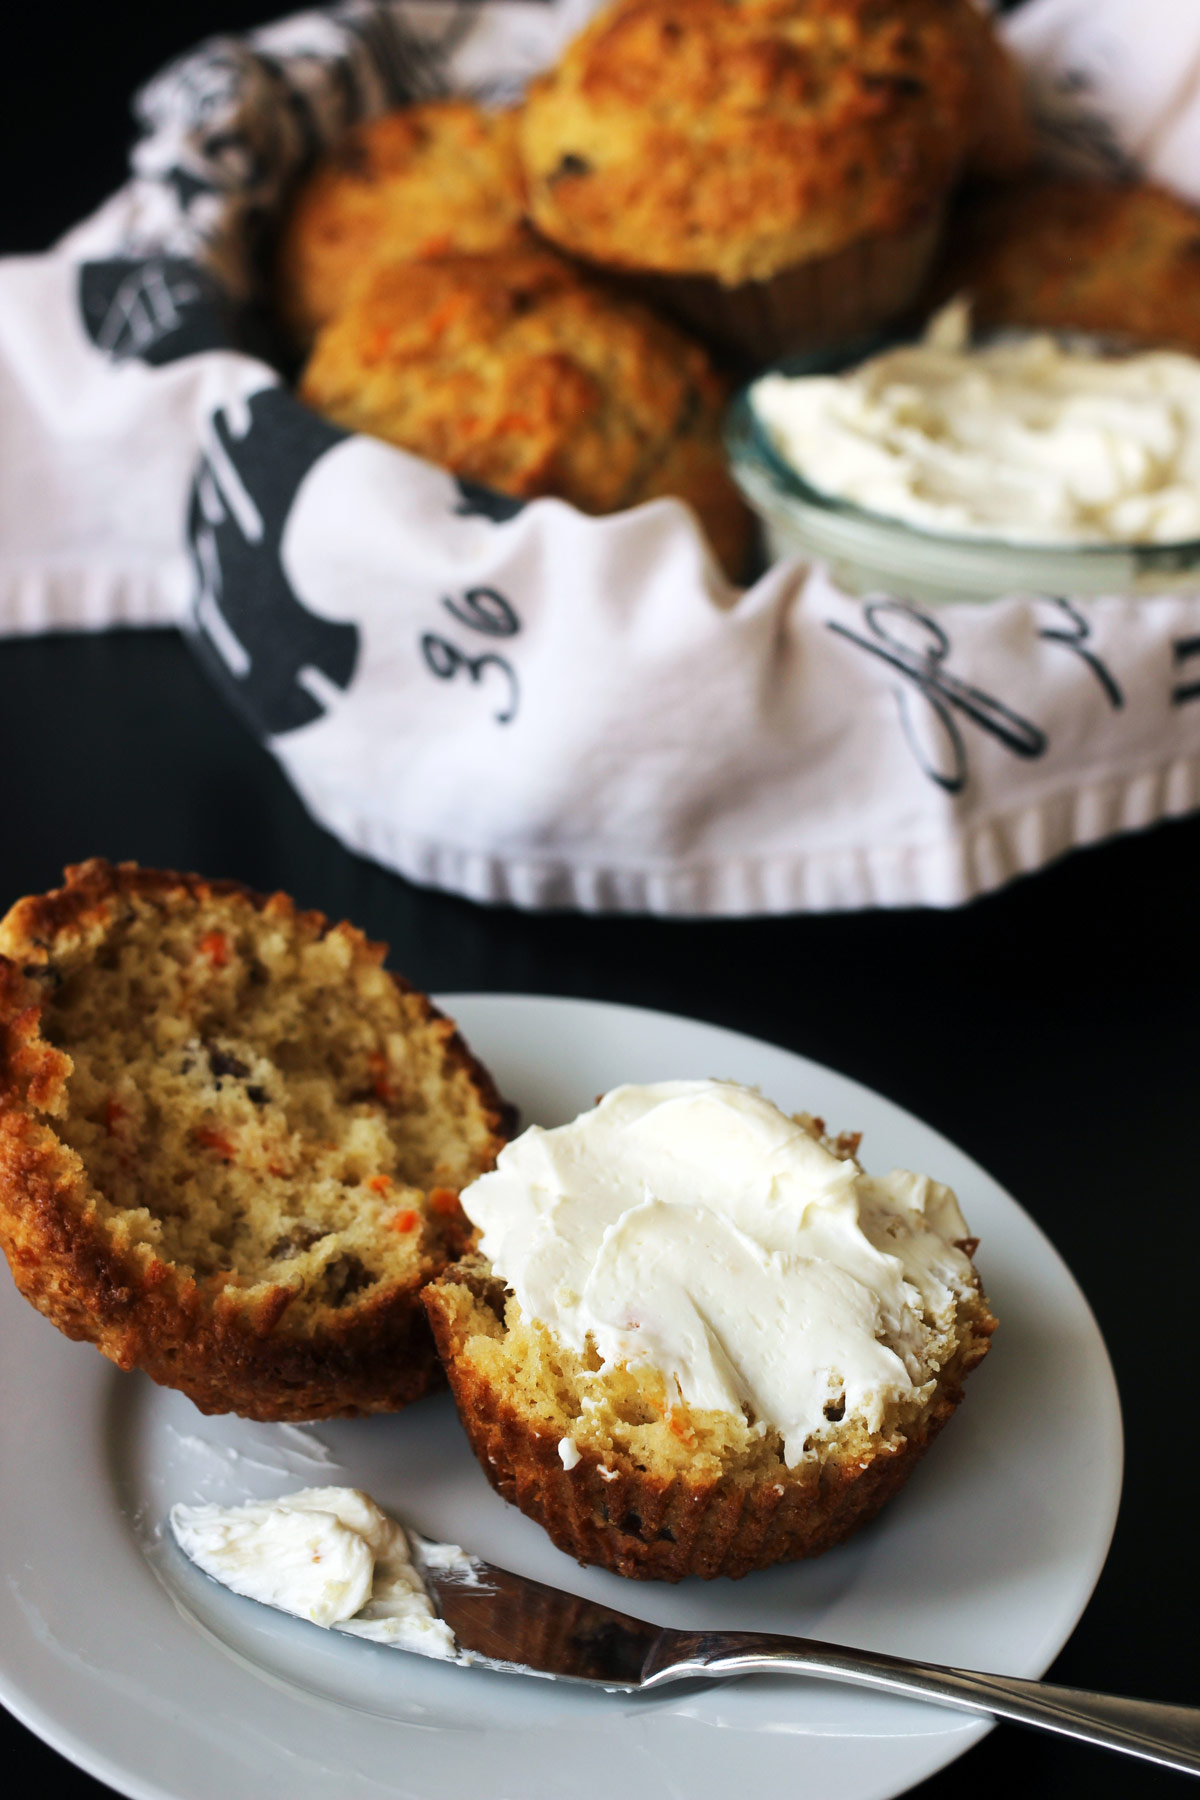 muffin on small plate with cream cheese spread